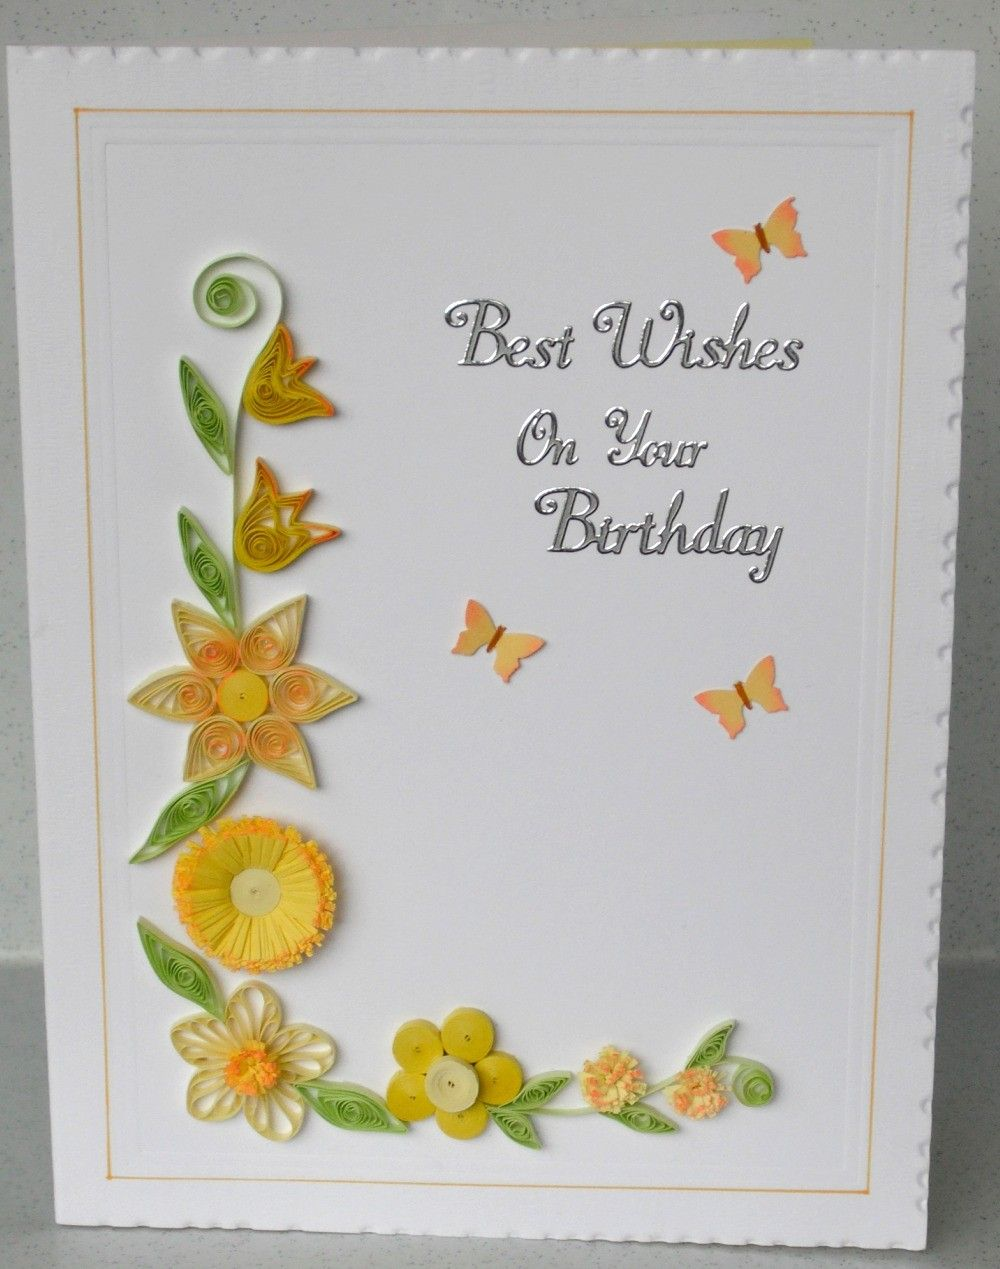 33 beauty paper quilling patterns birthday paper quilling birthday card quilled by paperdaisycarddesign for paper quilling patterns birthday cards bookmarktalkfo Choice Image